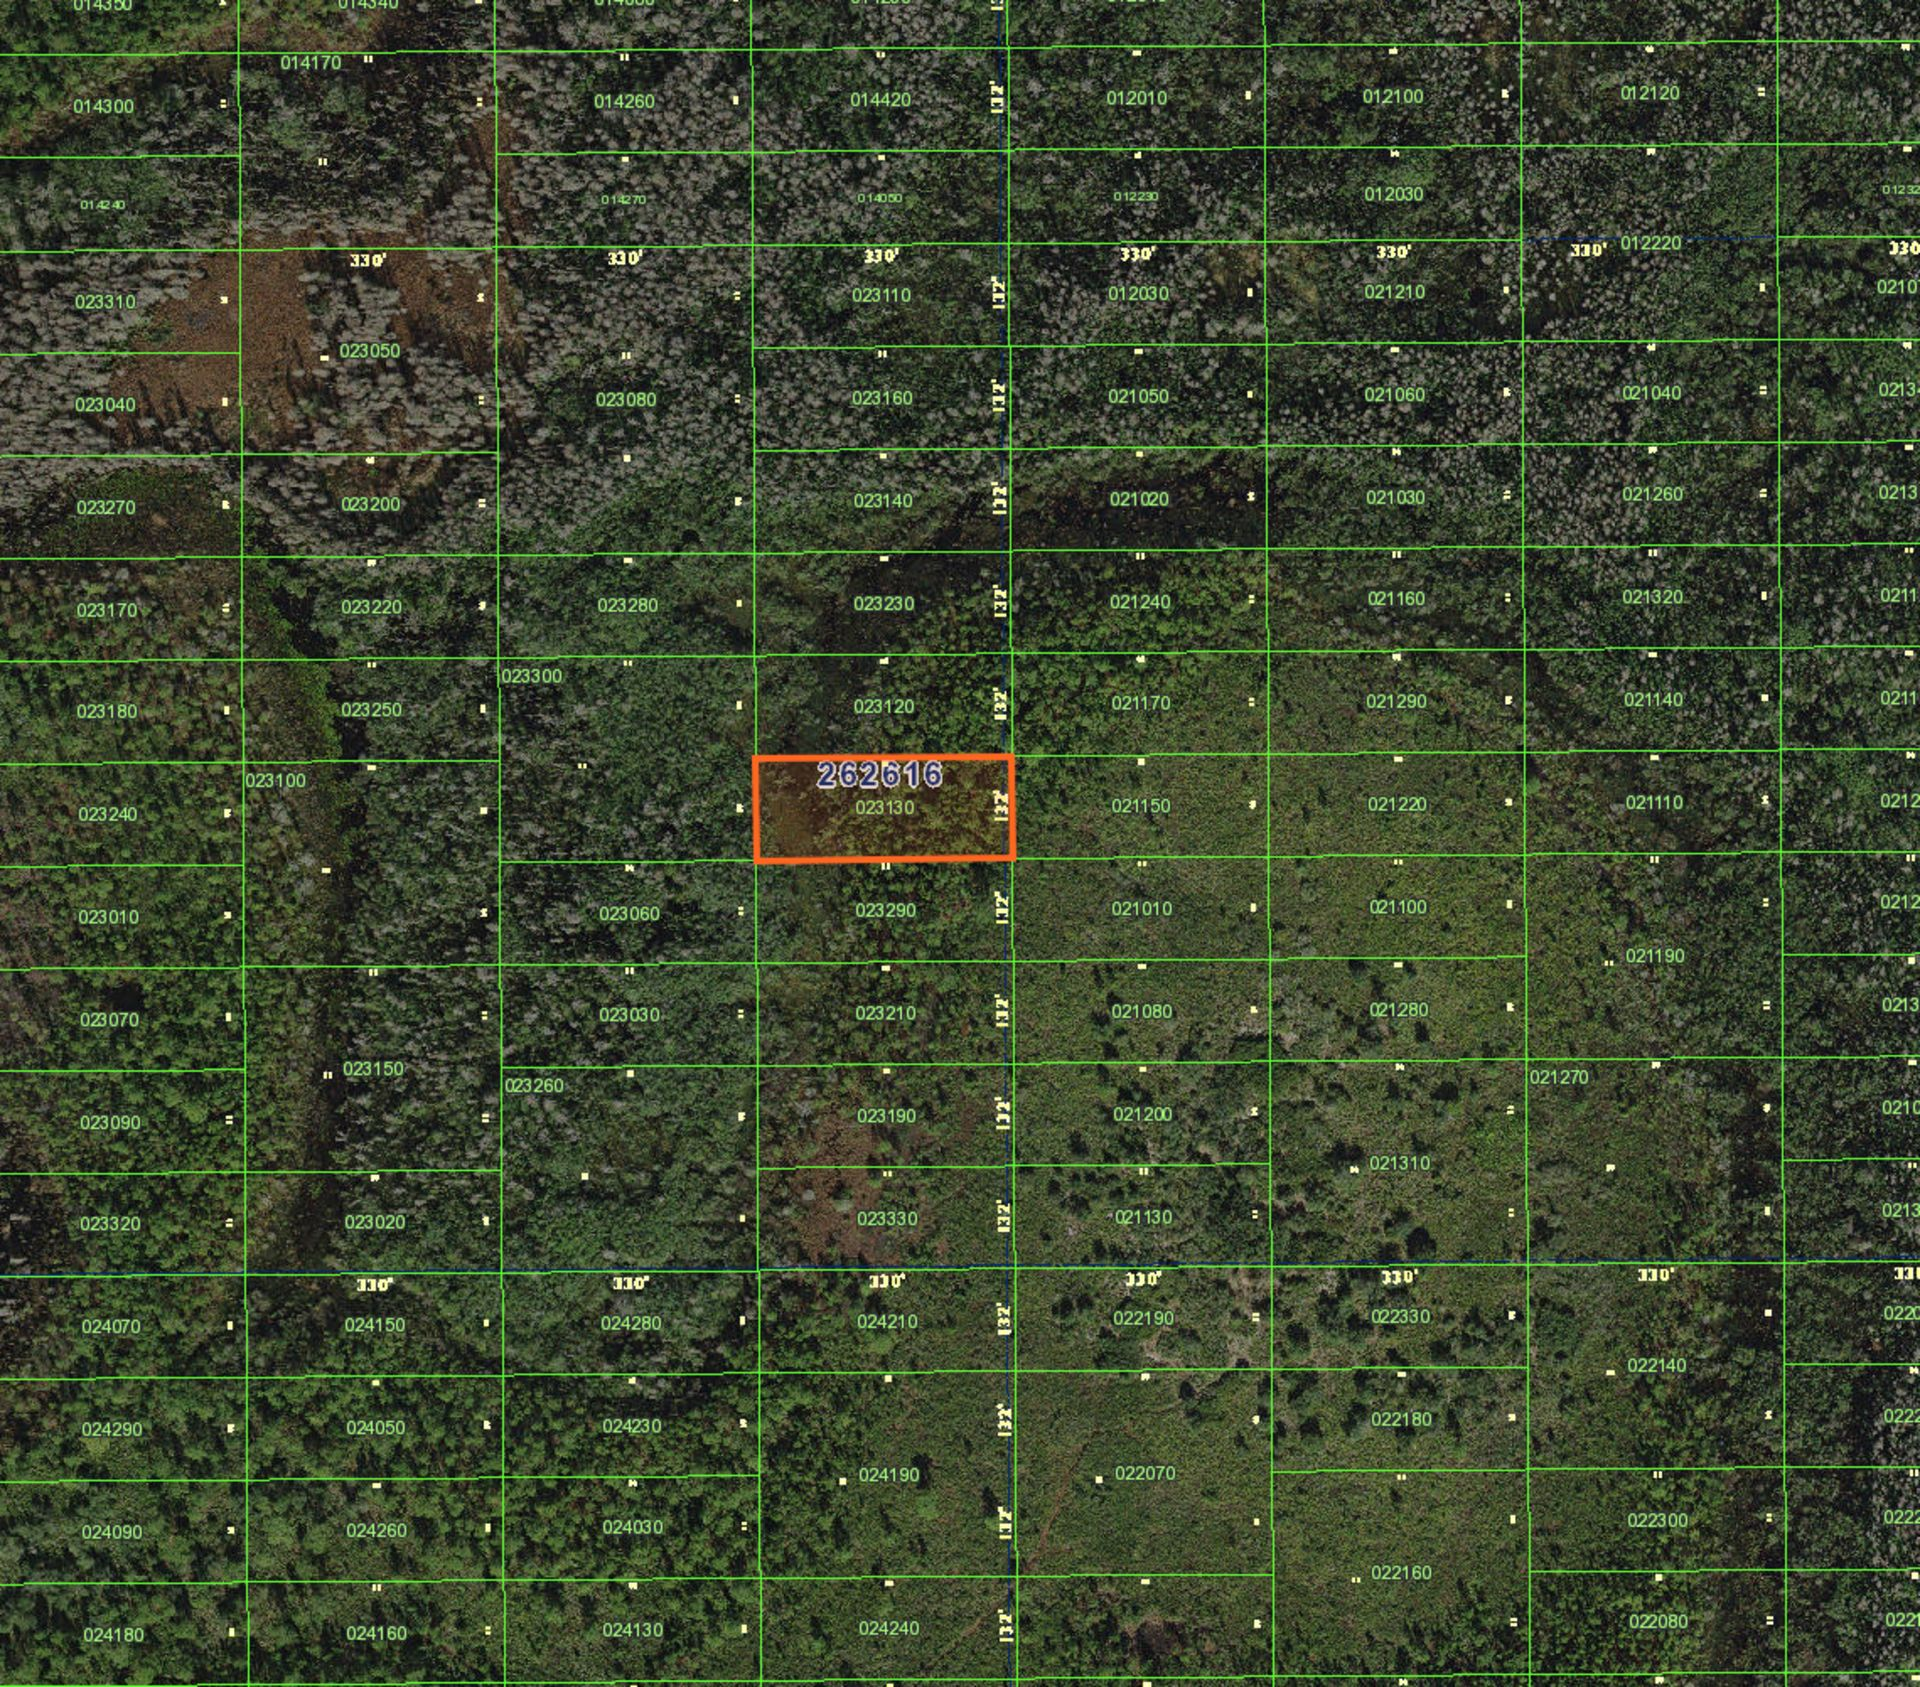 One Acre in Peaceful Polk County, Florida! - Image 2 of 4